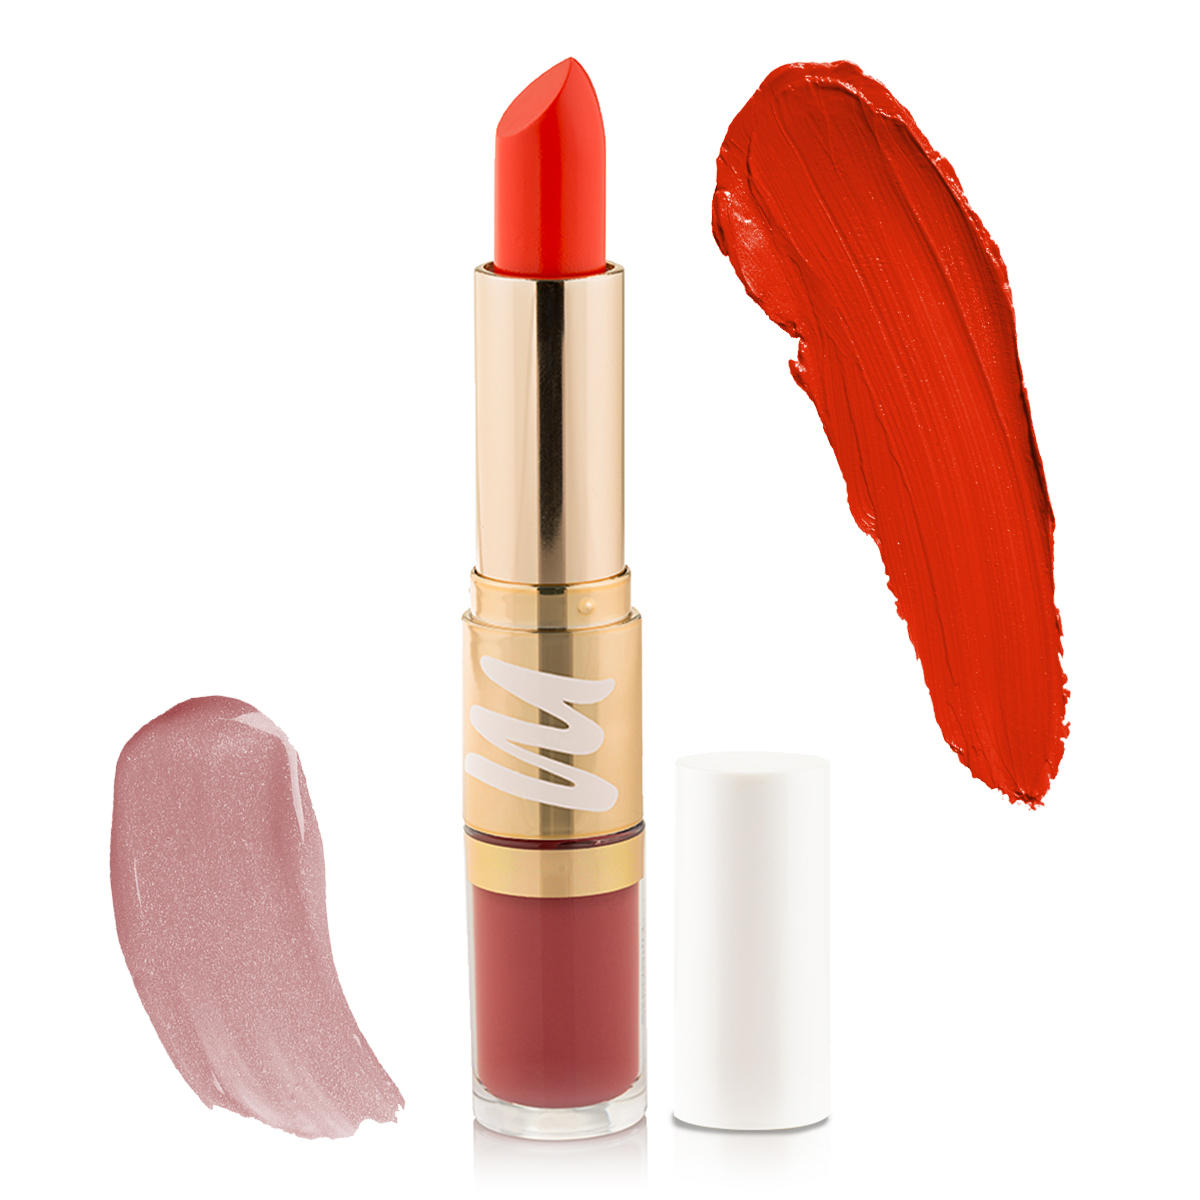 2 in 1 Plumping Lipstick + Plumping Lip gloss - Sultry Diva